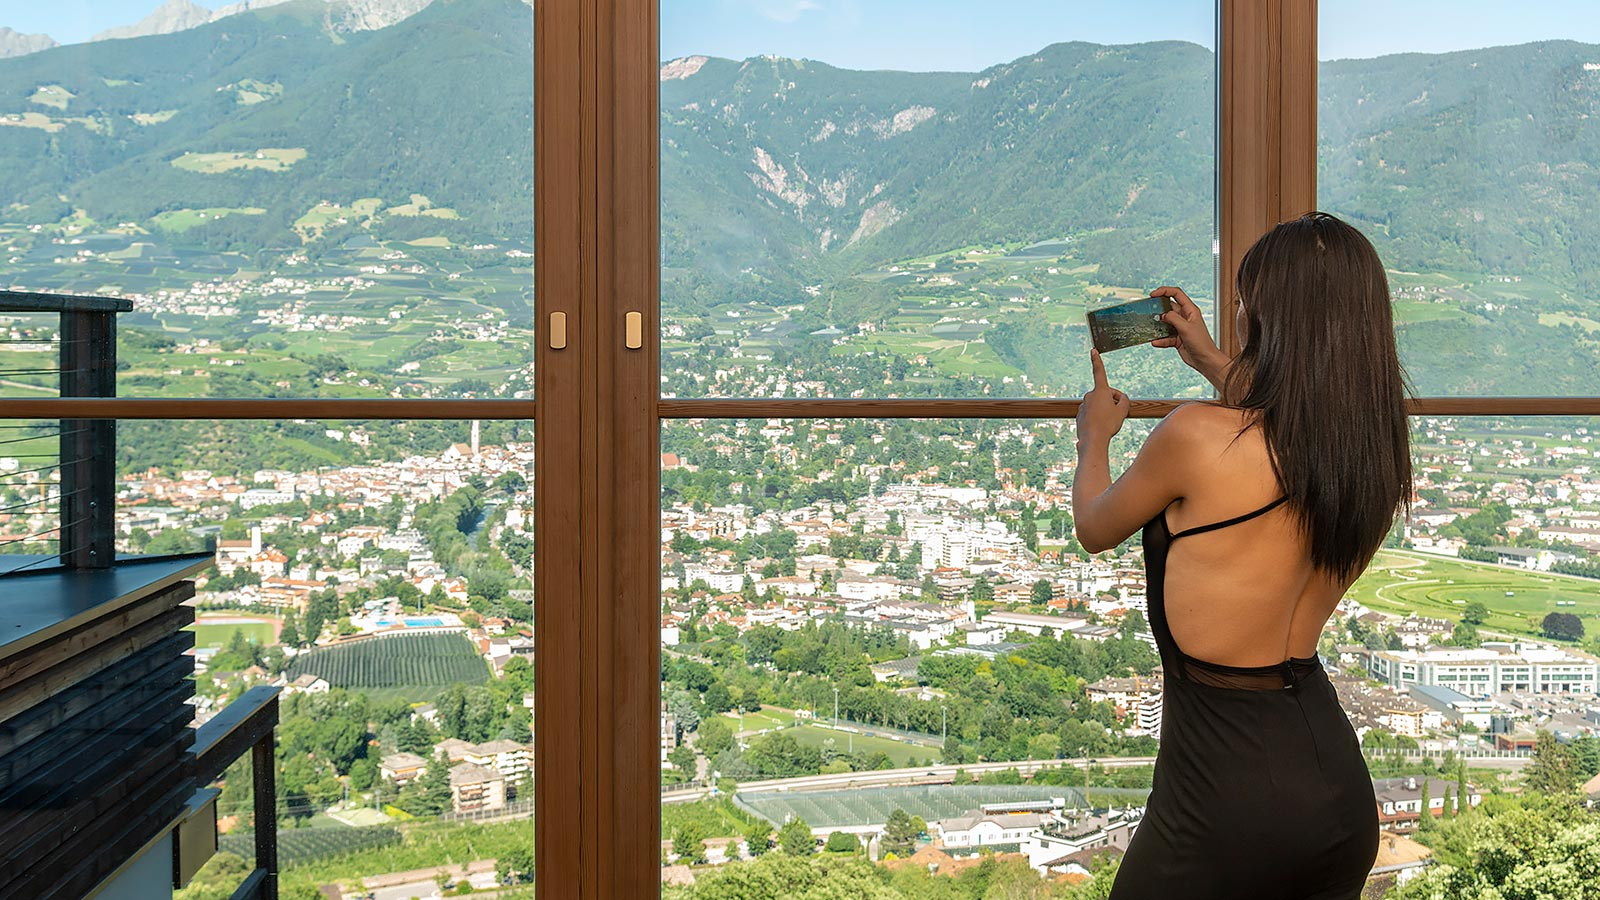 A girl photographs the city of Merano from the hall in our residence in Marlengo